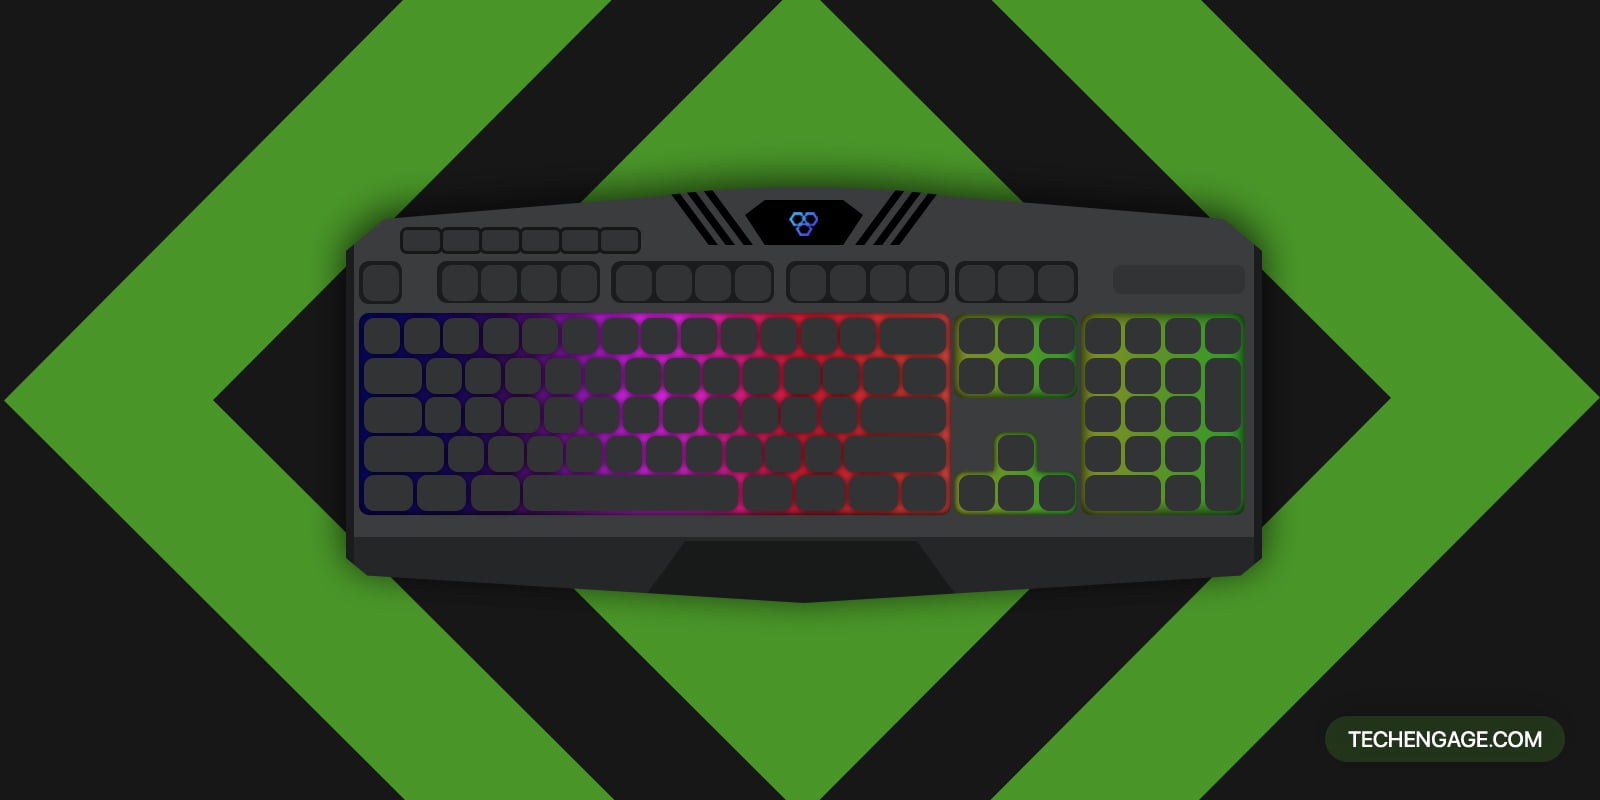 Image of a gaming Keyboard